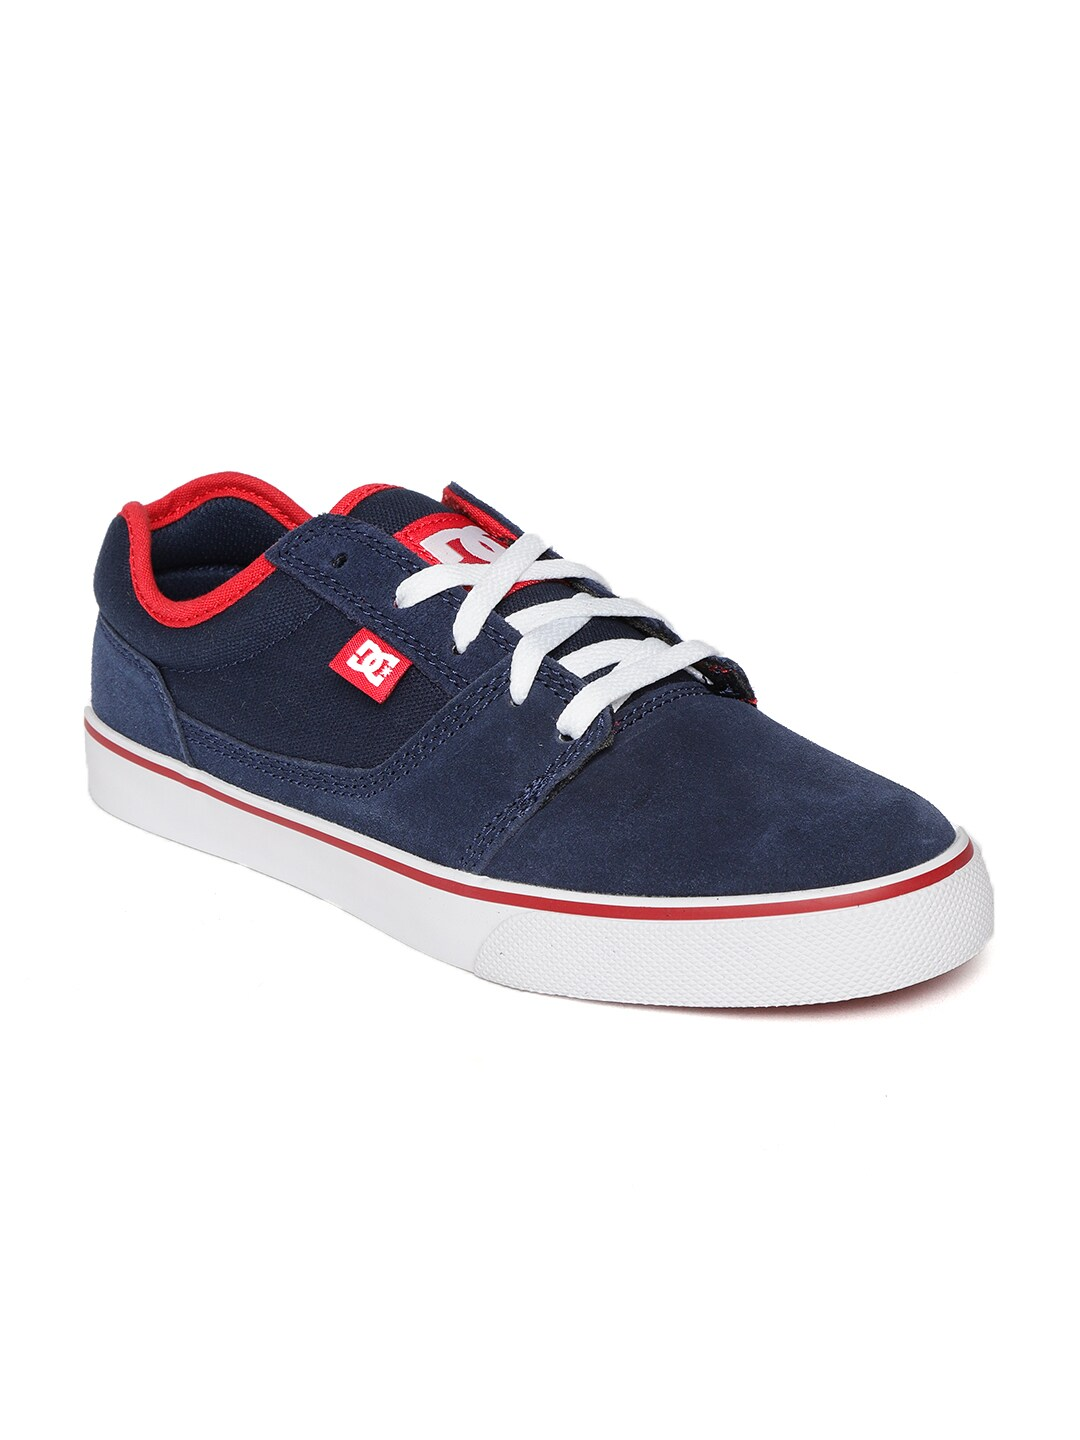 afae665be81d DC Shoes - Buy DC Shoes for Men   Women Online in India